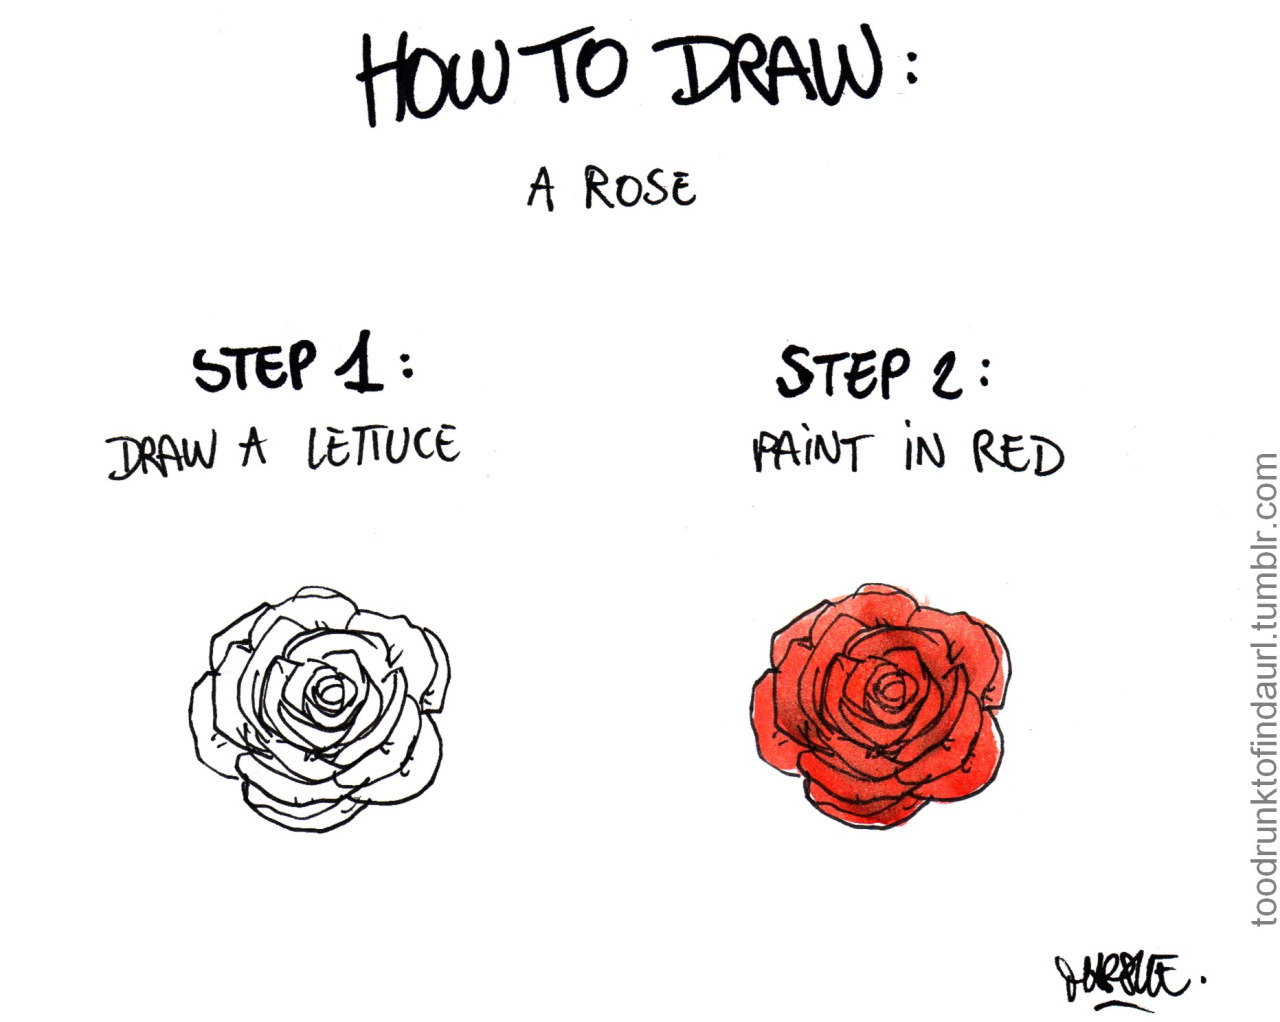 How to draw a rose The Poke - photo#8